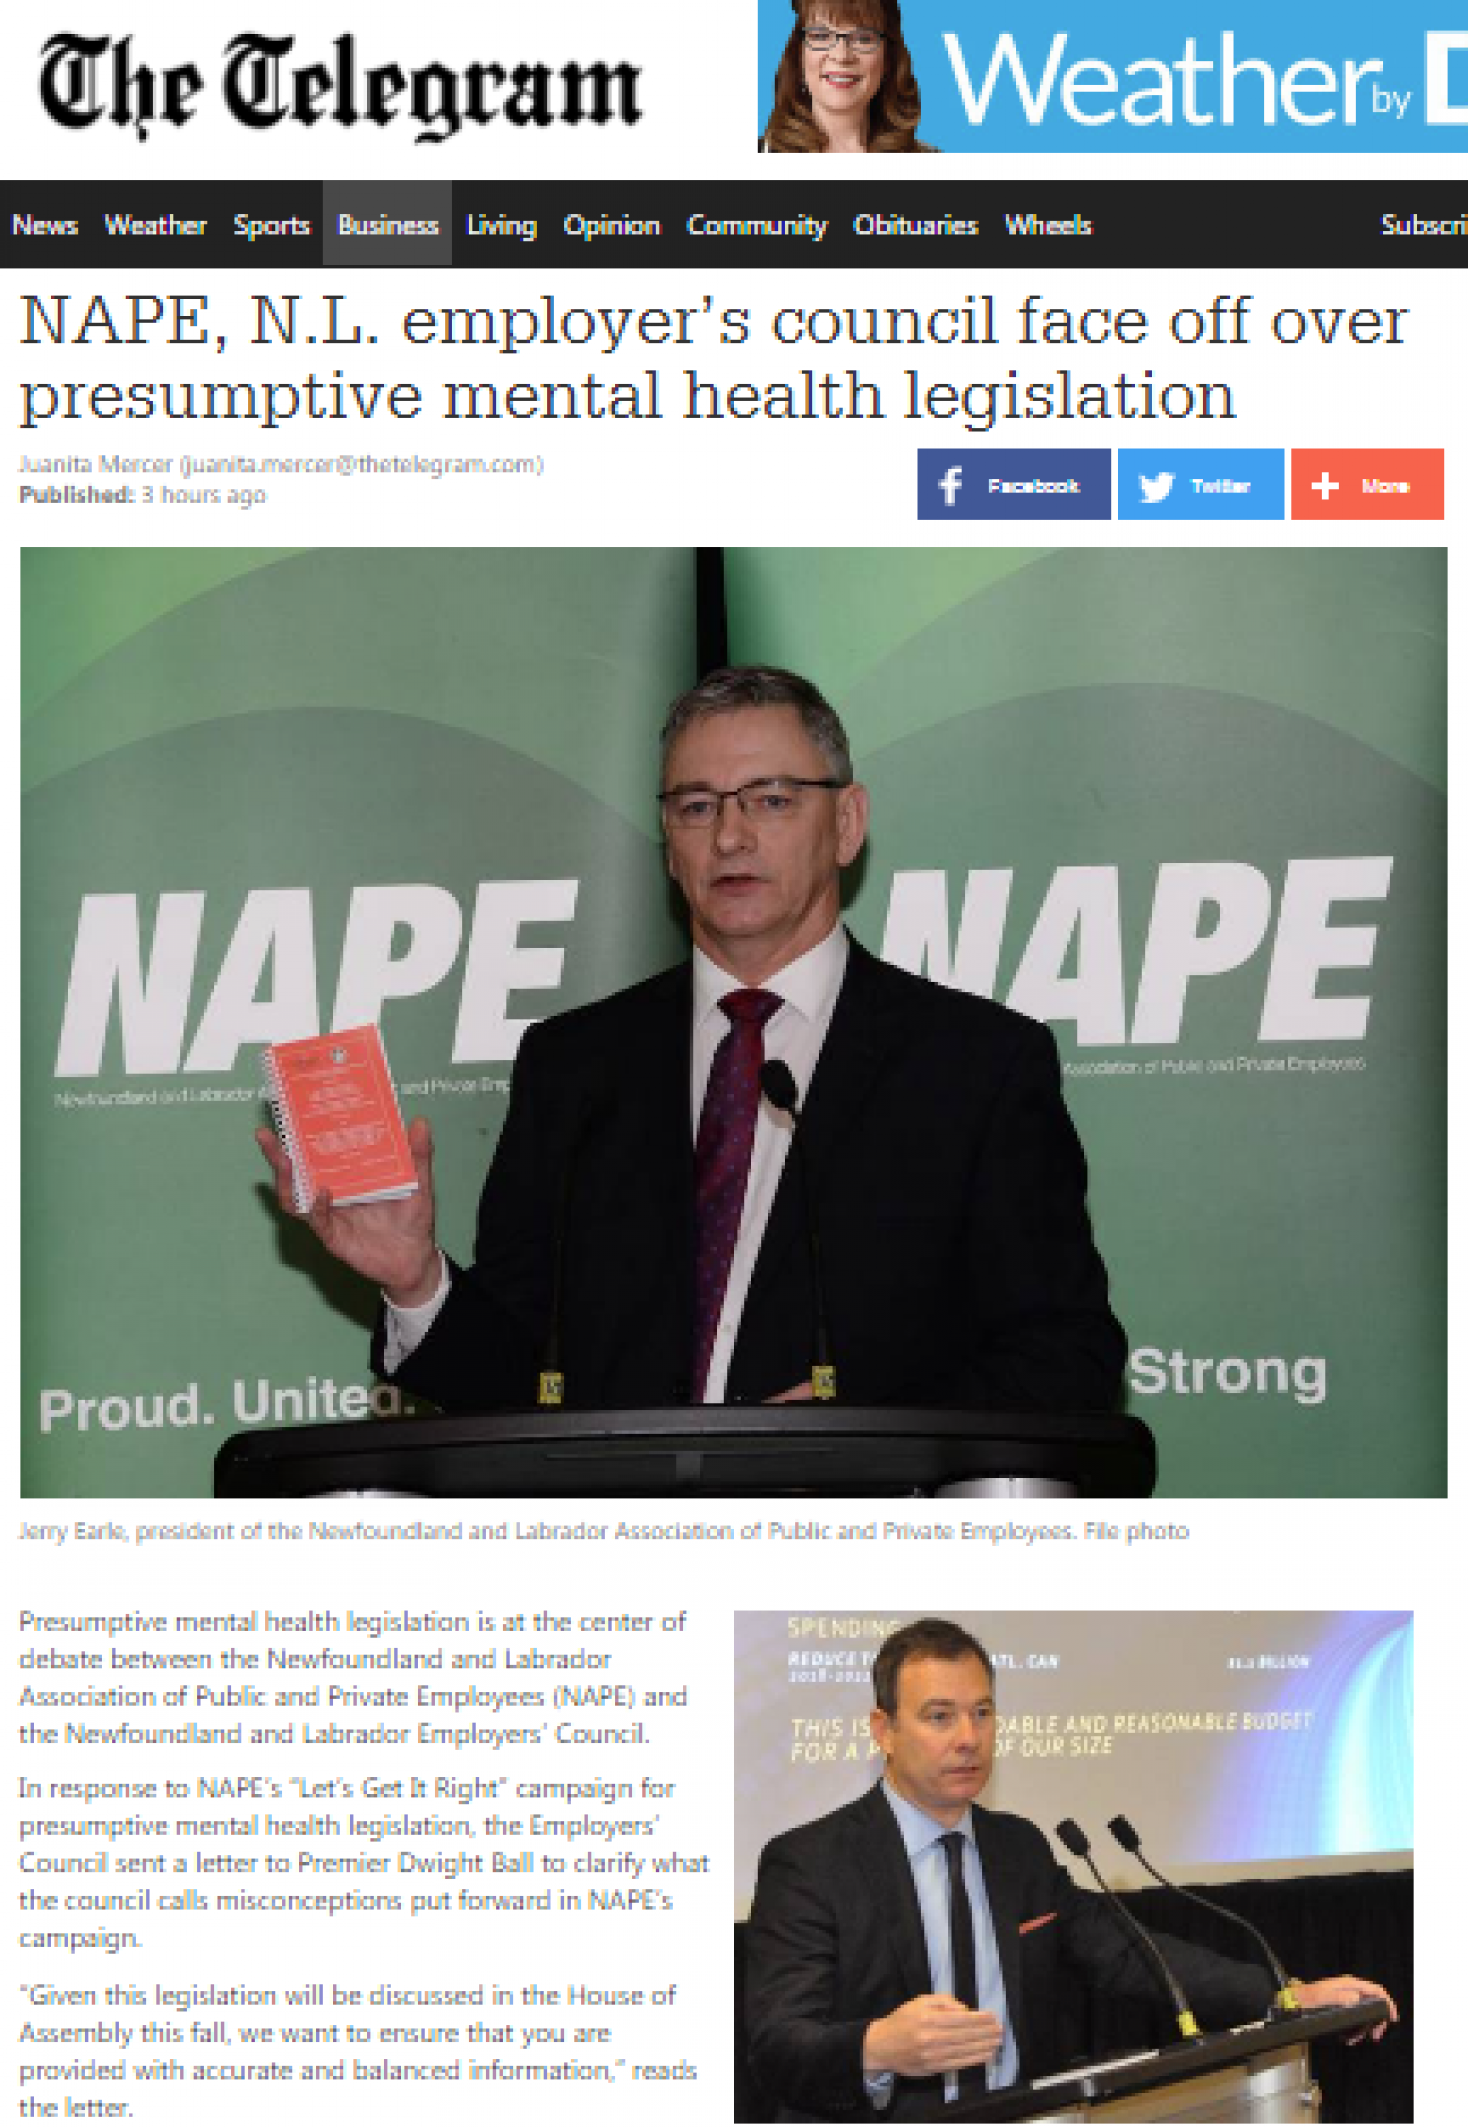 Employer's Council addresses inaccuracies in NAPE's campaign for presumptive workplace mental health legislation